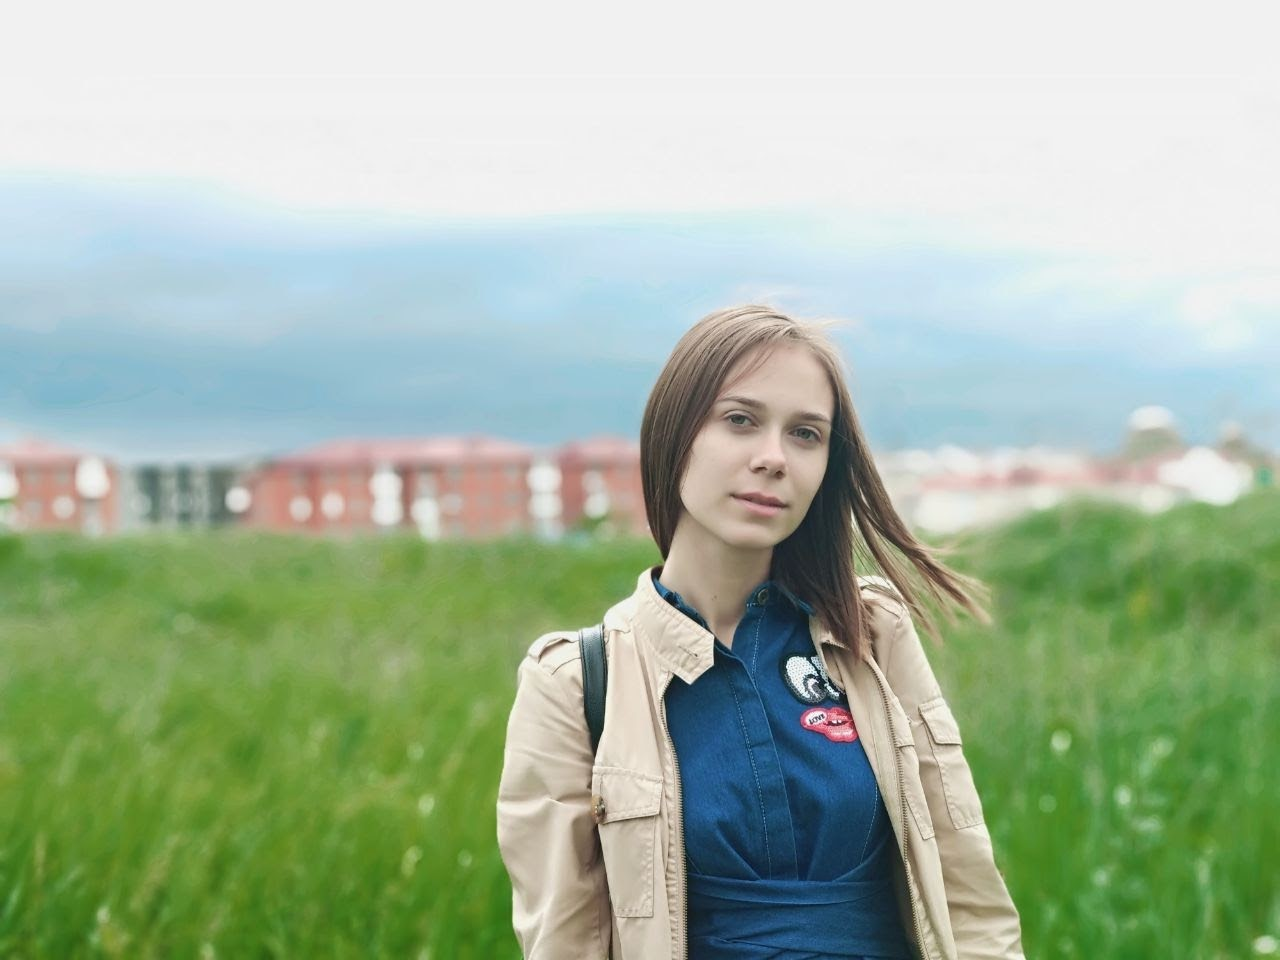 Daring to code: How one young developer found her way in a rural community in Russia